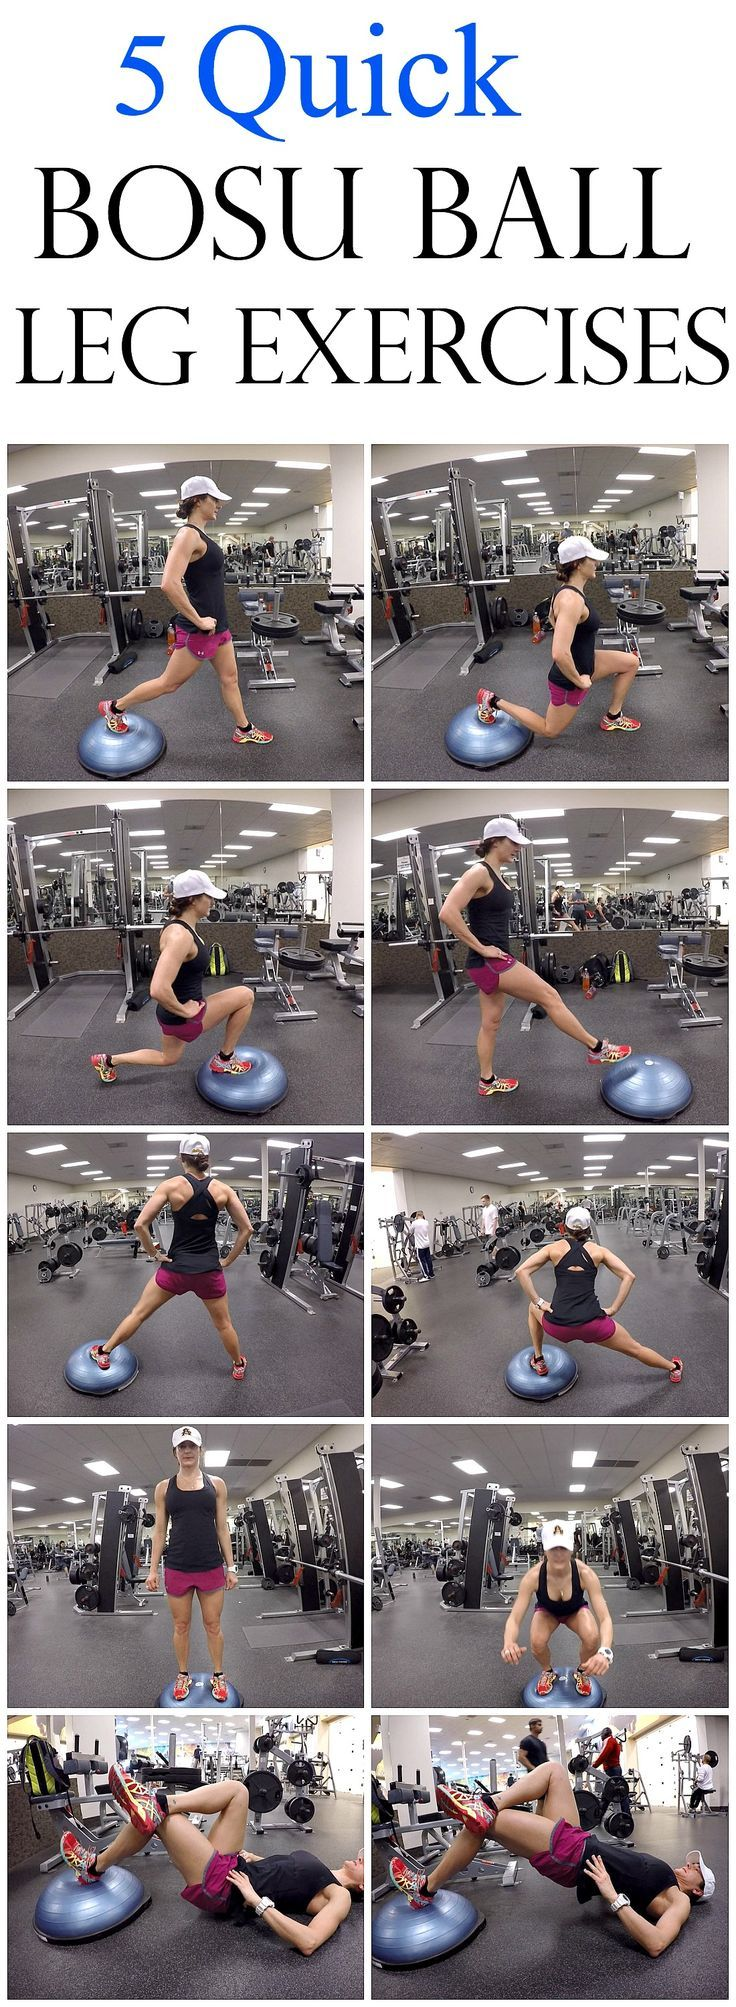 5 Quick Bosu Ball Leg Exercises